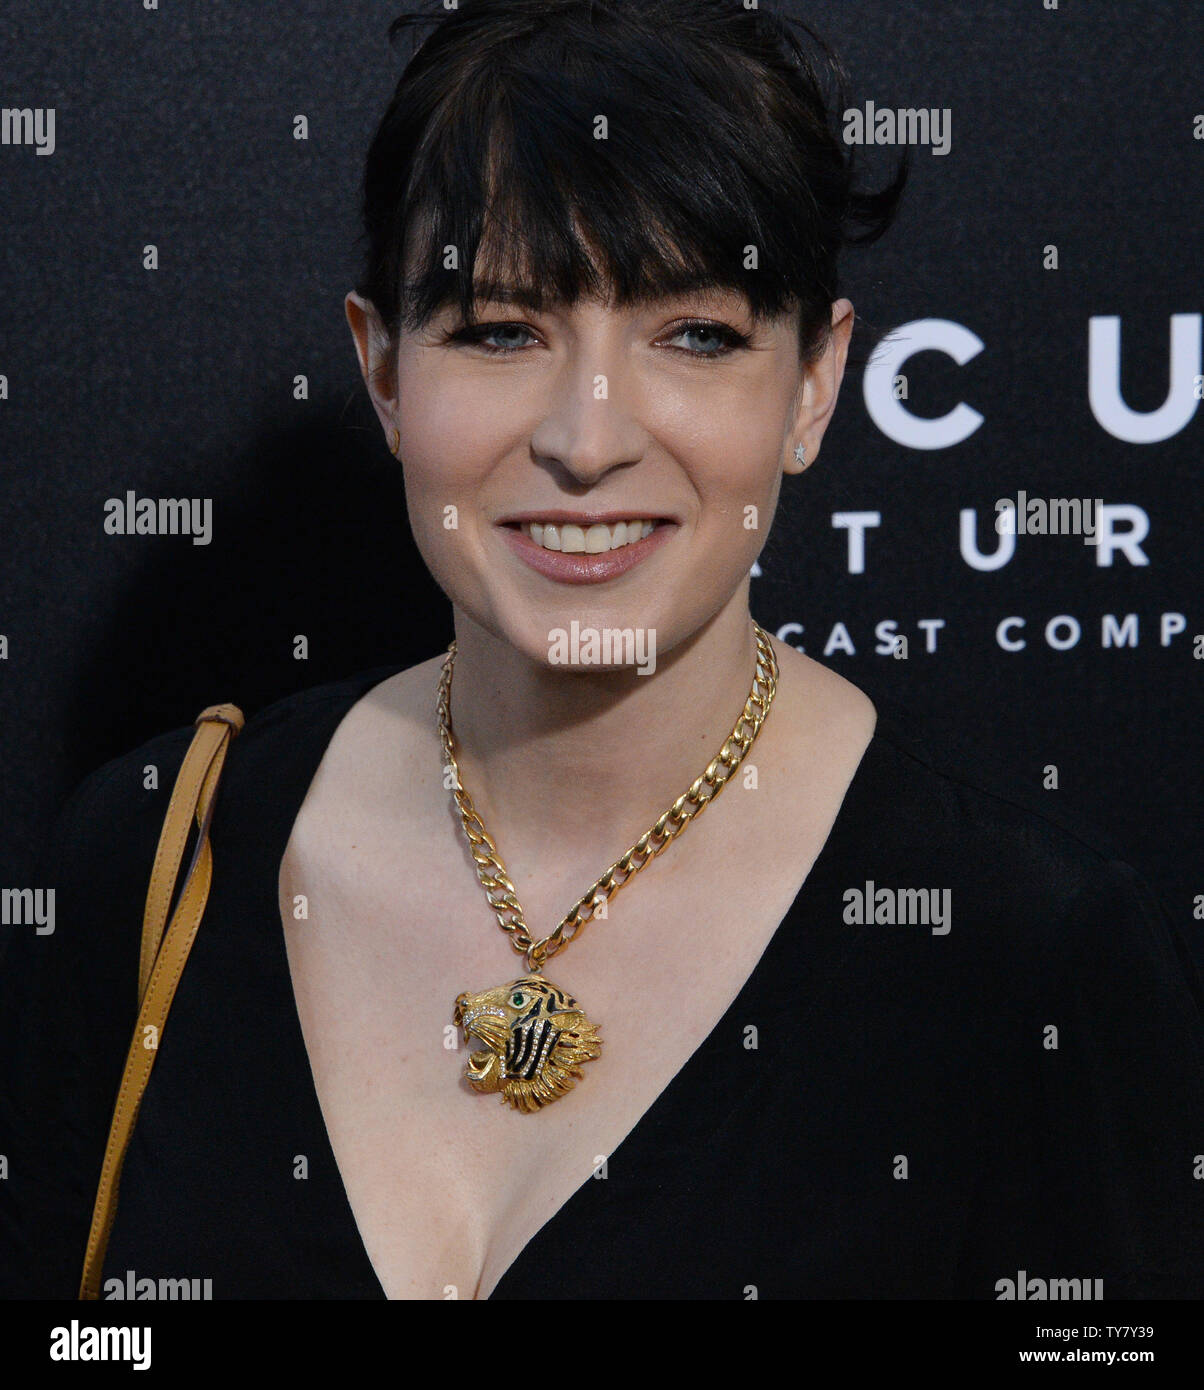 Writer Diablo Cody attends the premiere of the motion picture